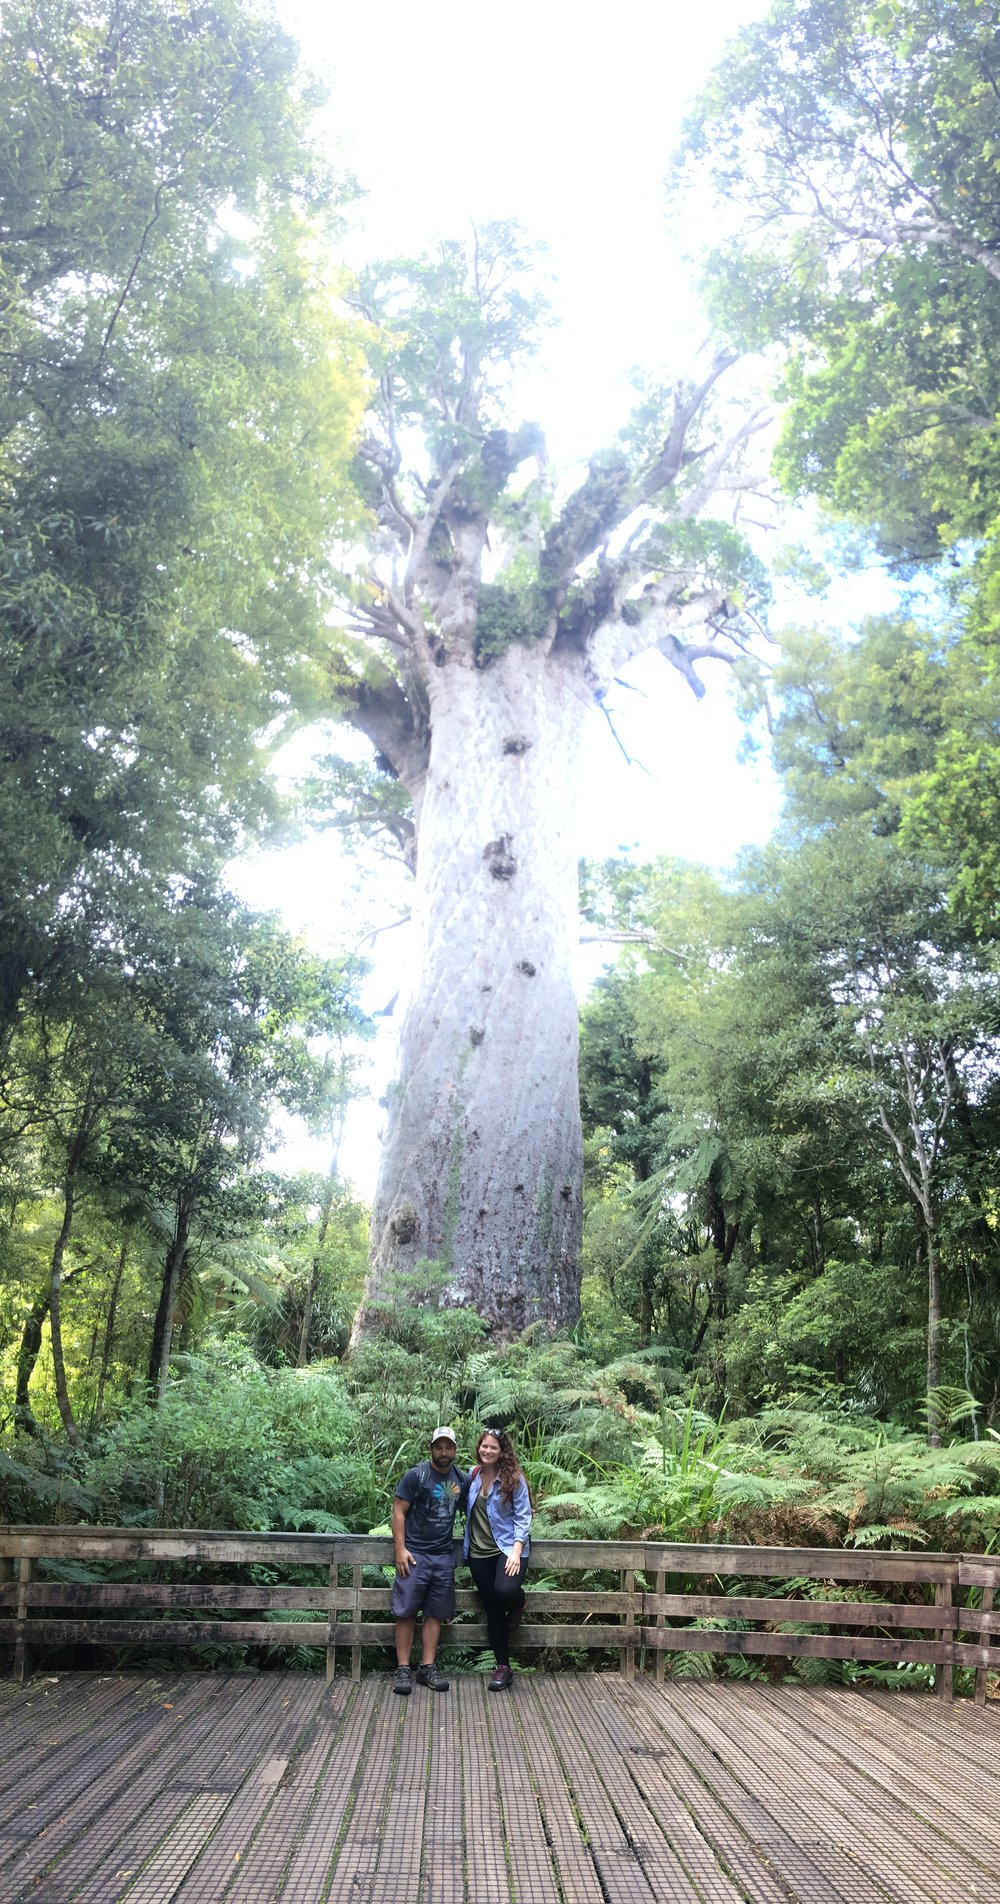 Visiting with Tane Mahuta (51 meters high, 13.8 meter trunk girth) - this is one of the oldest Kauri trees! They built a beautiful boardwalk to it and then discovered there was an even older one much less accessible.